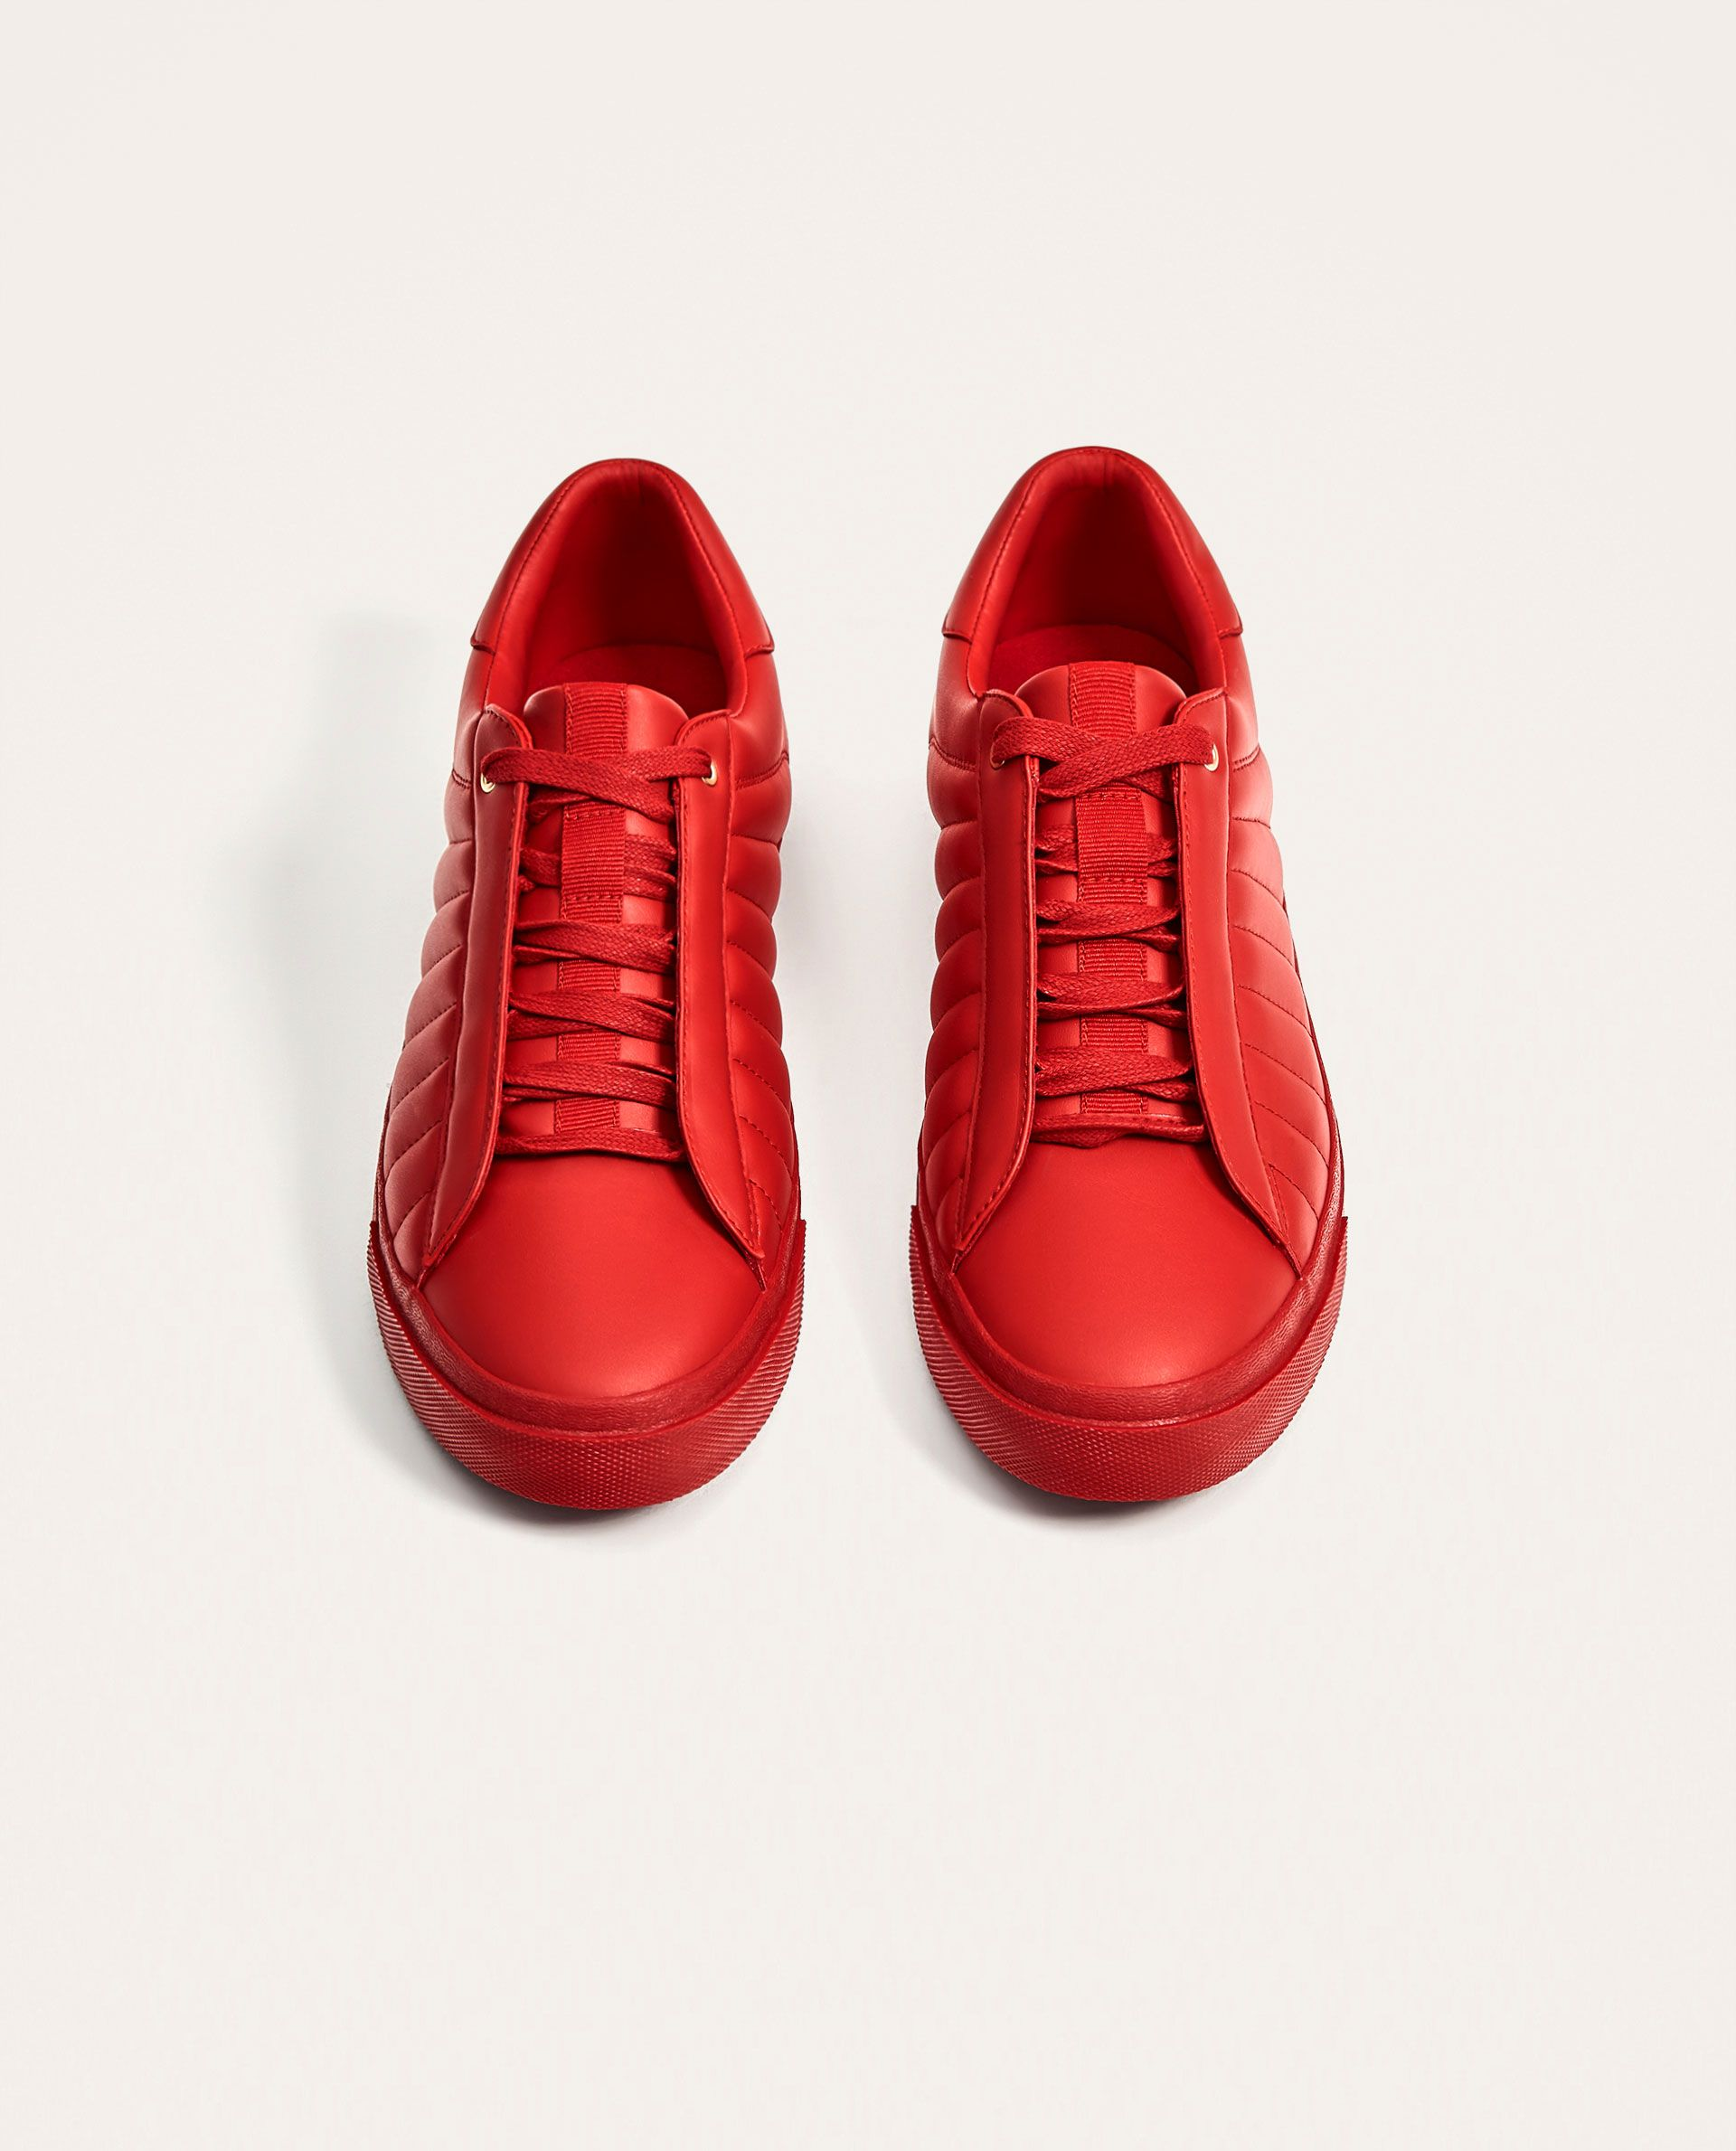 21b31aee4a44 RED QUILTED SNEAKERS from Zara